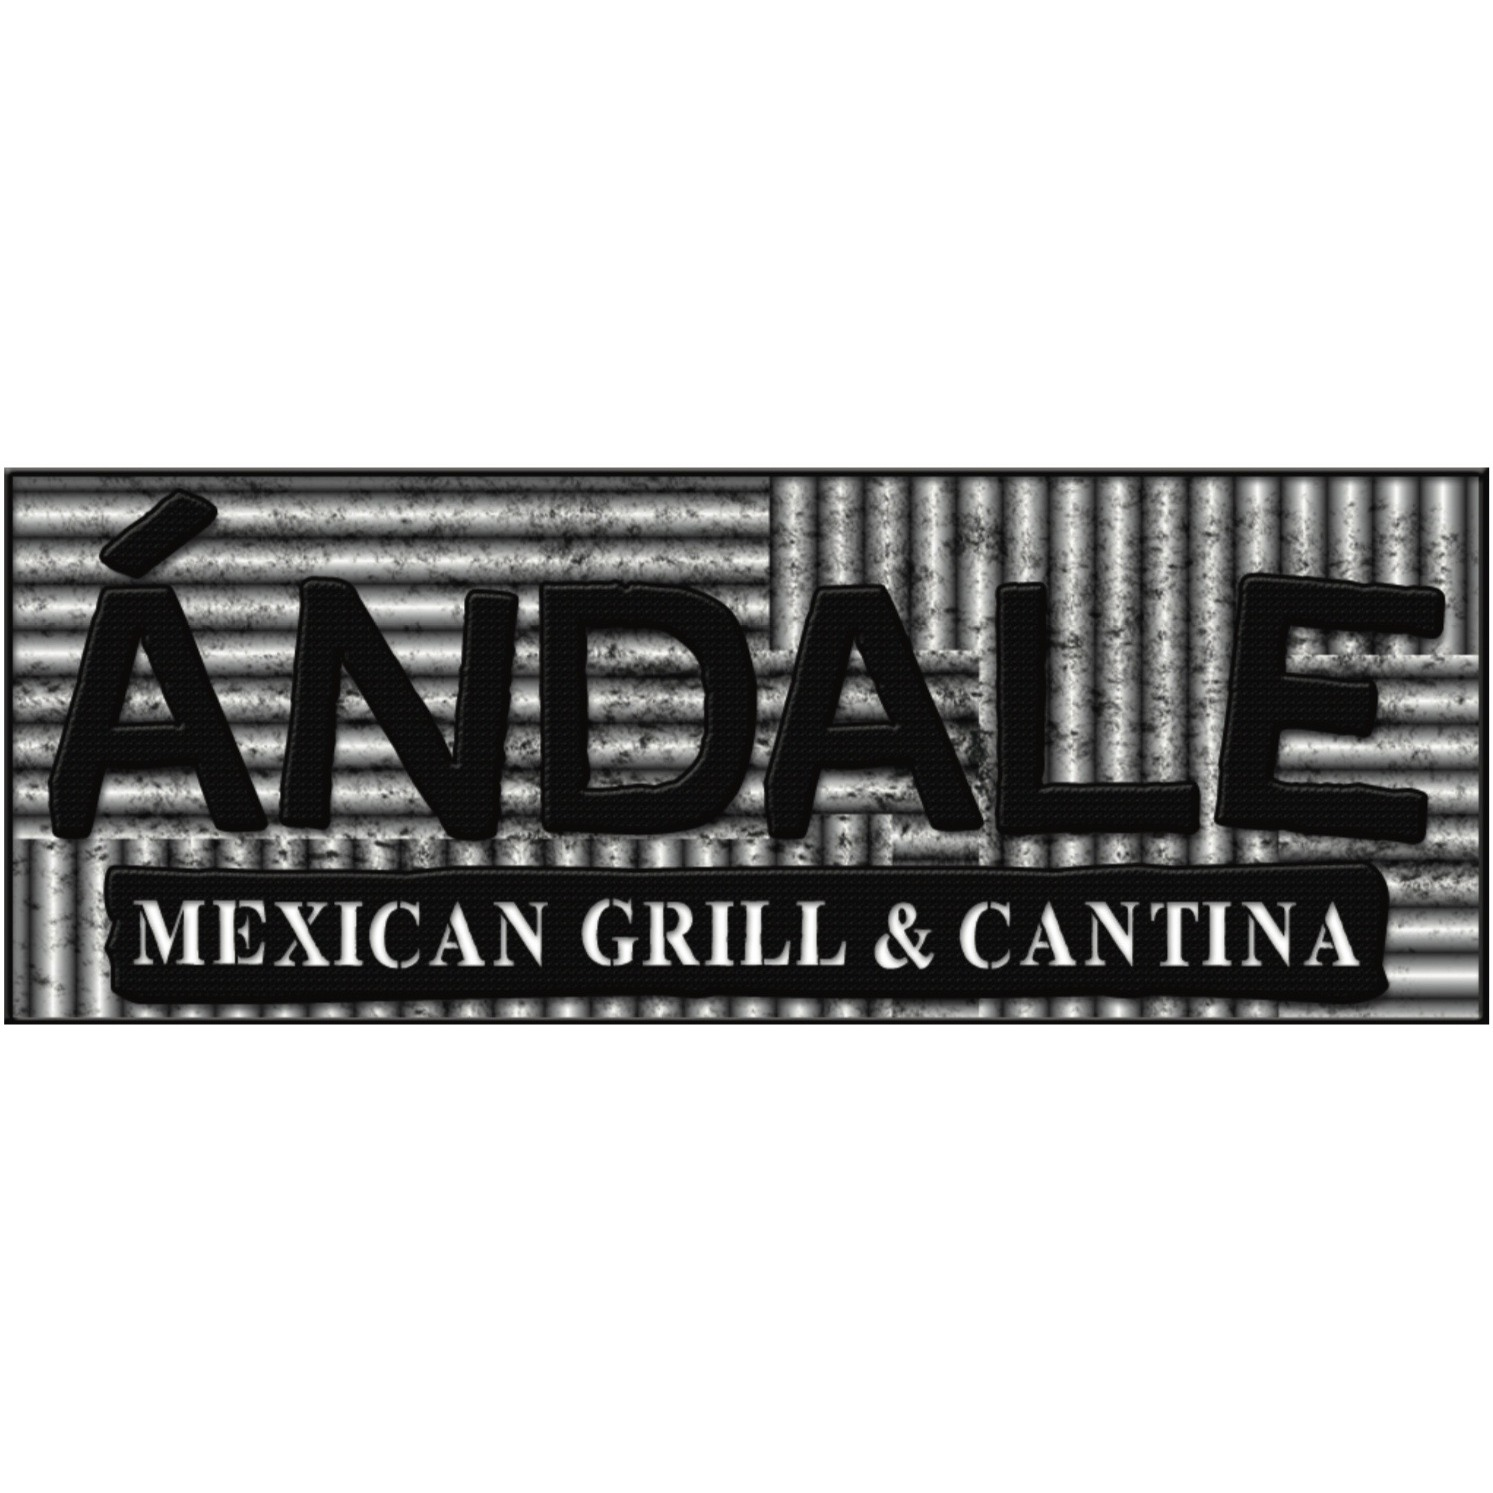 Andale Mexican Grill & Cantina - Commerce Charter Township, MI 48382 - (248)363-9000 | ShowMeLocal.com